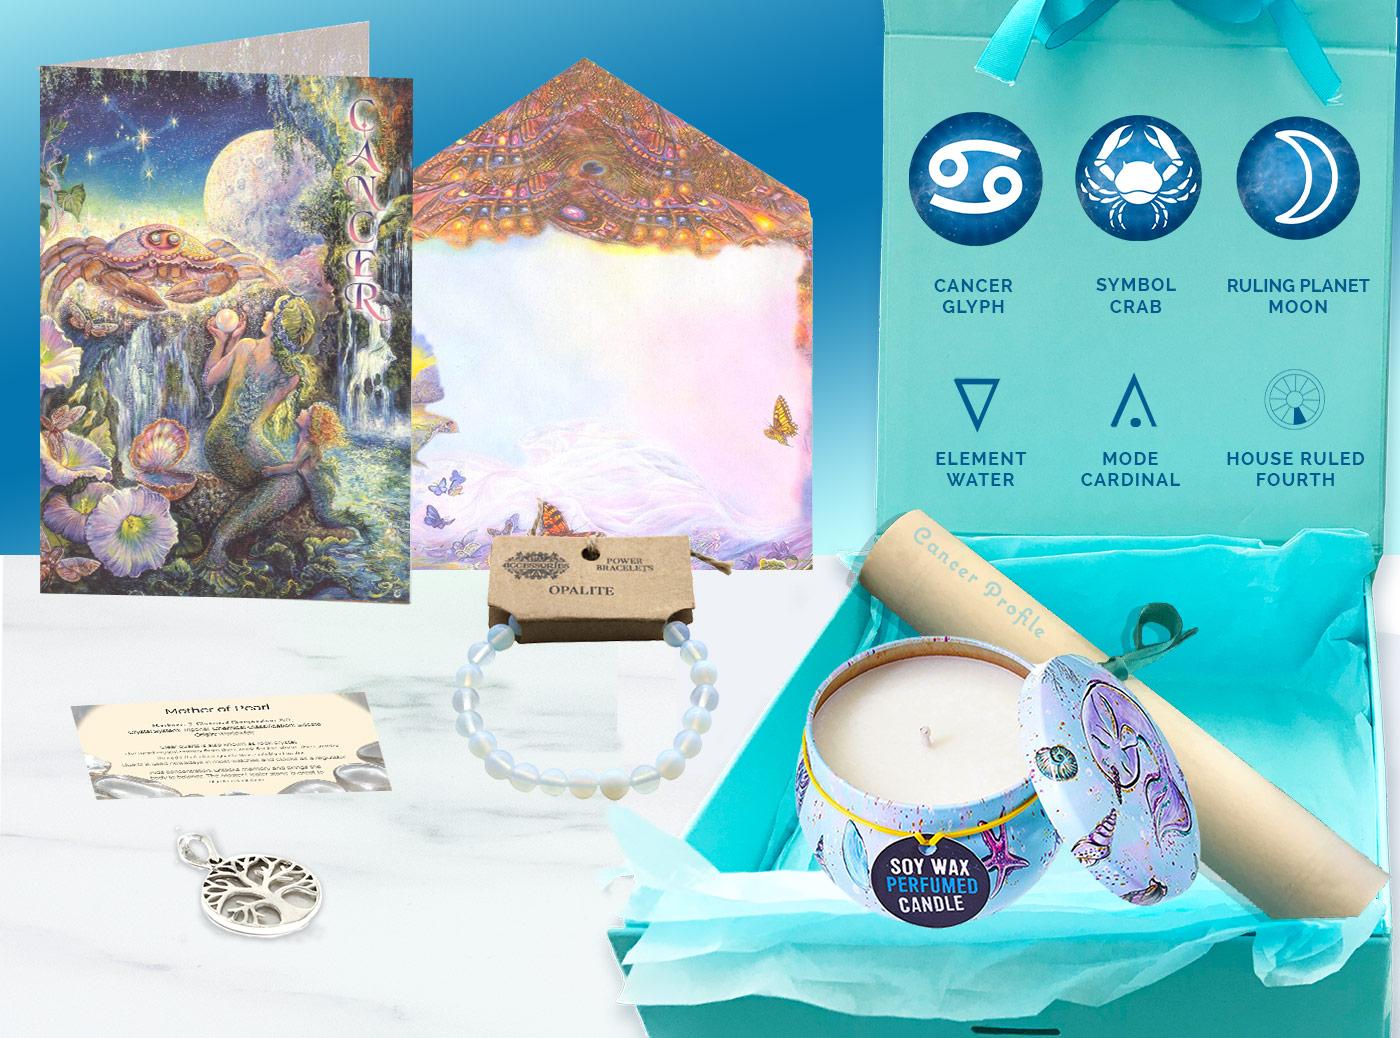 Cancer Gift Box and card